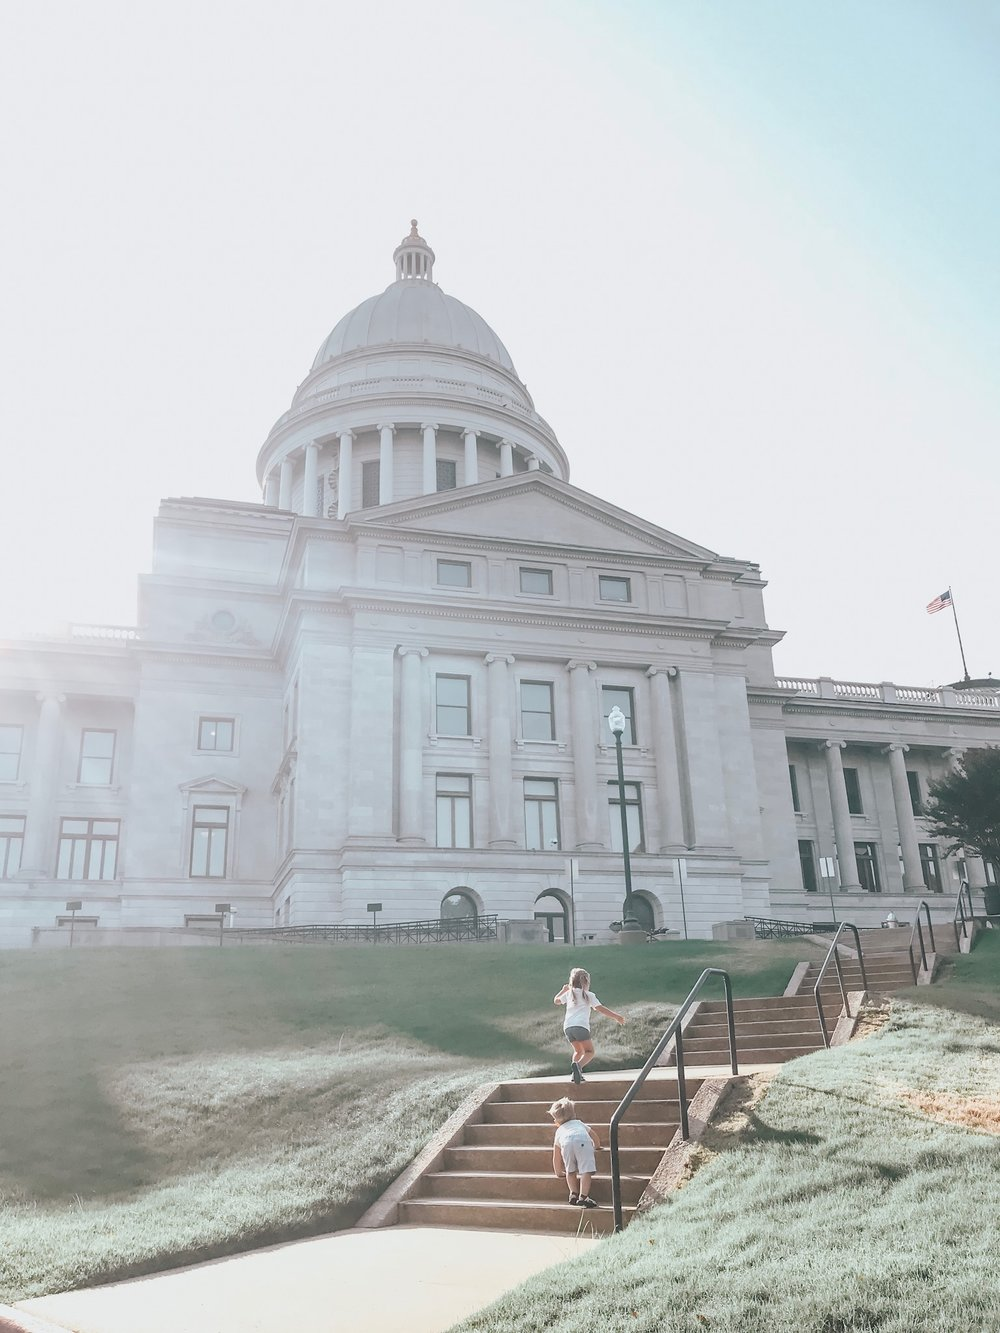 The sun was gorgous over the Arkansas State Capitol